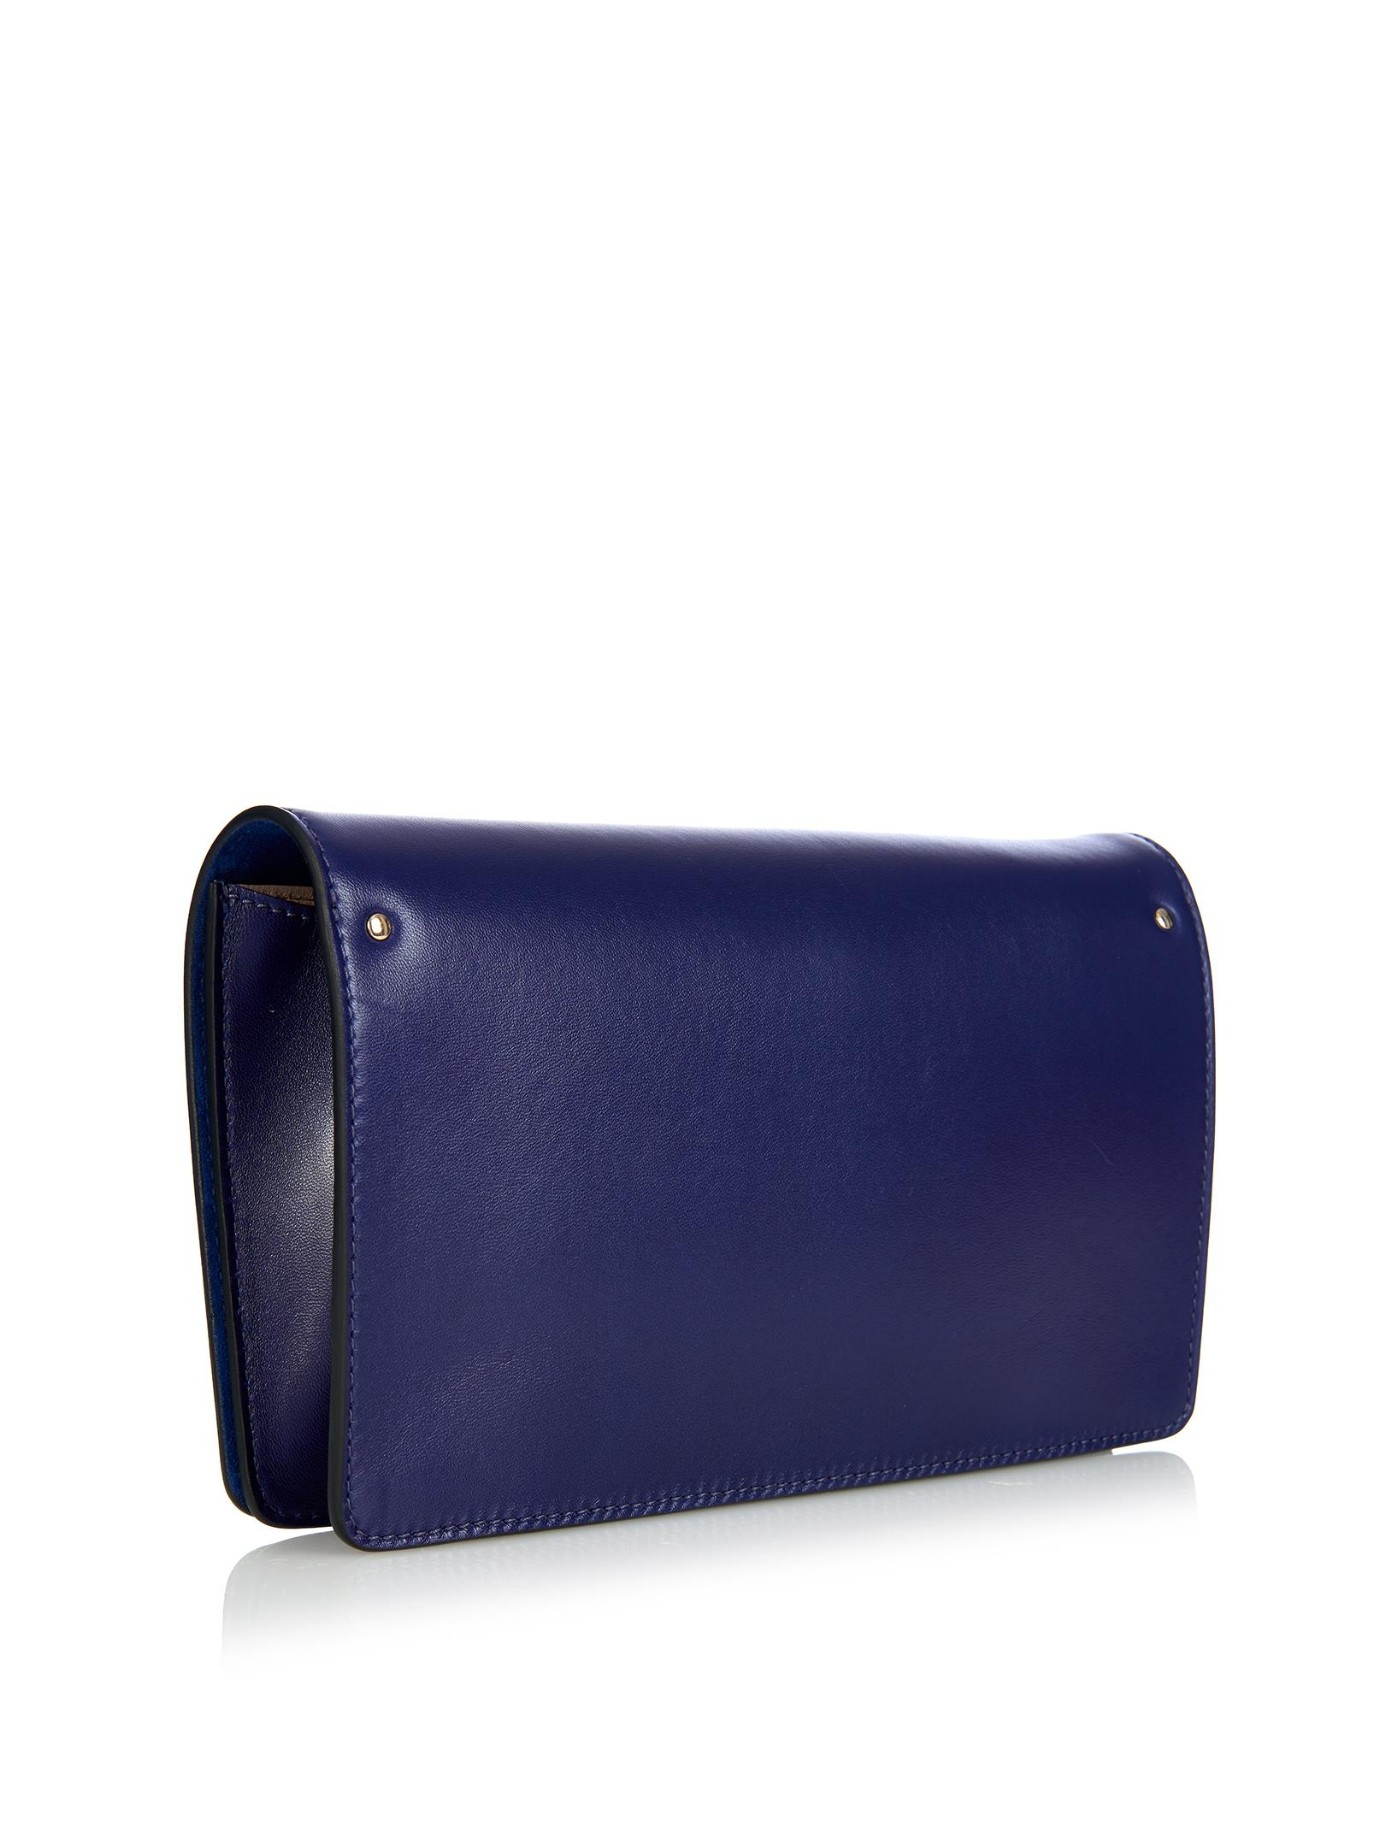 Chlo�� Gabrielle Leather And Suede Clutch in Blue | Lyst